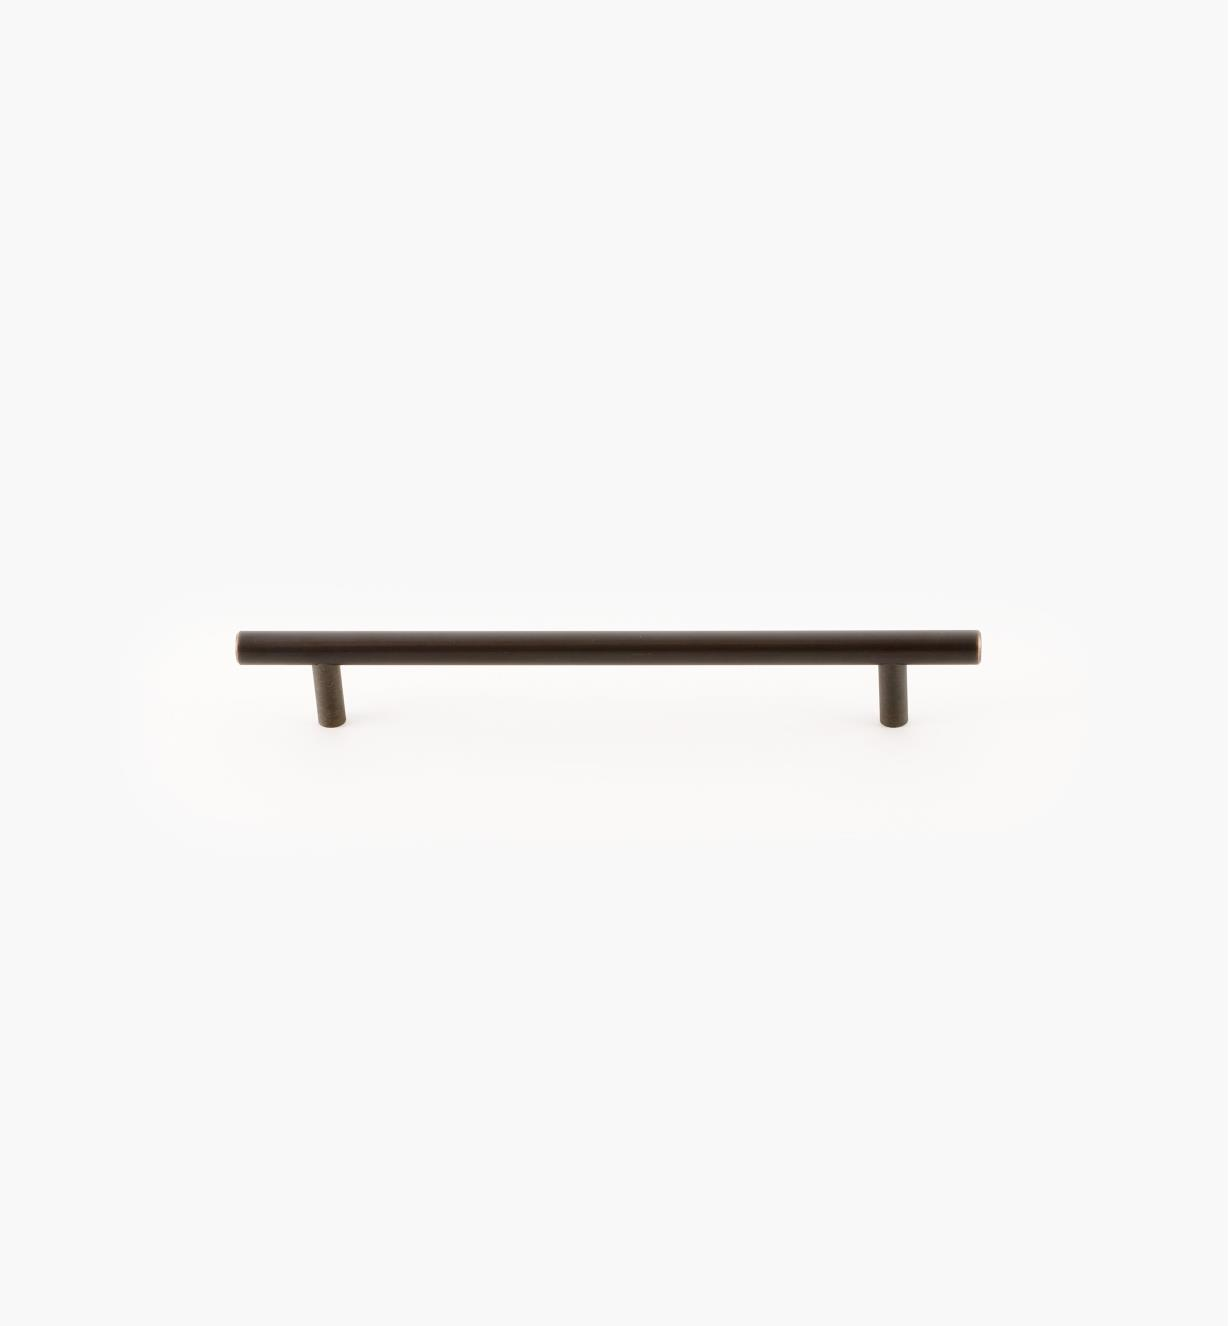 02A1488 - Bar Oil-Rubbed Bronze 192mm (252mm) Pull, each